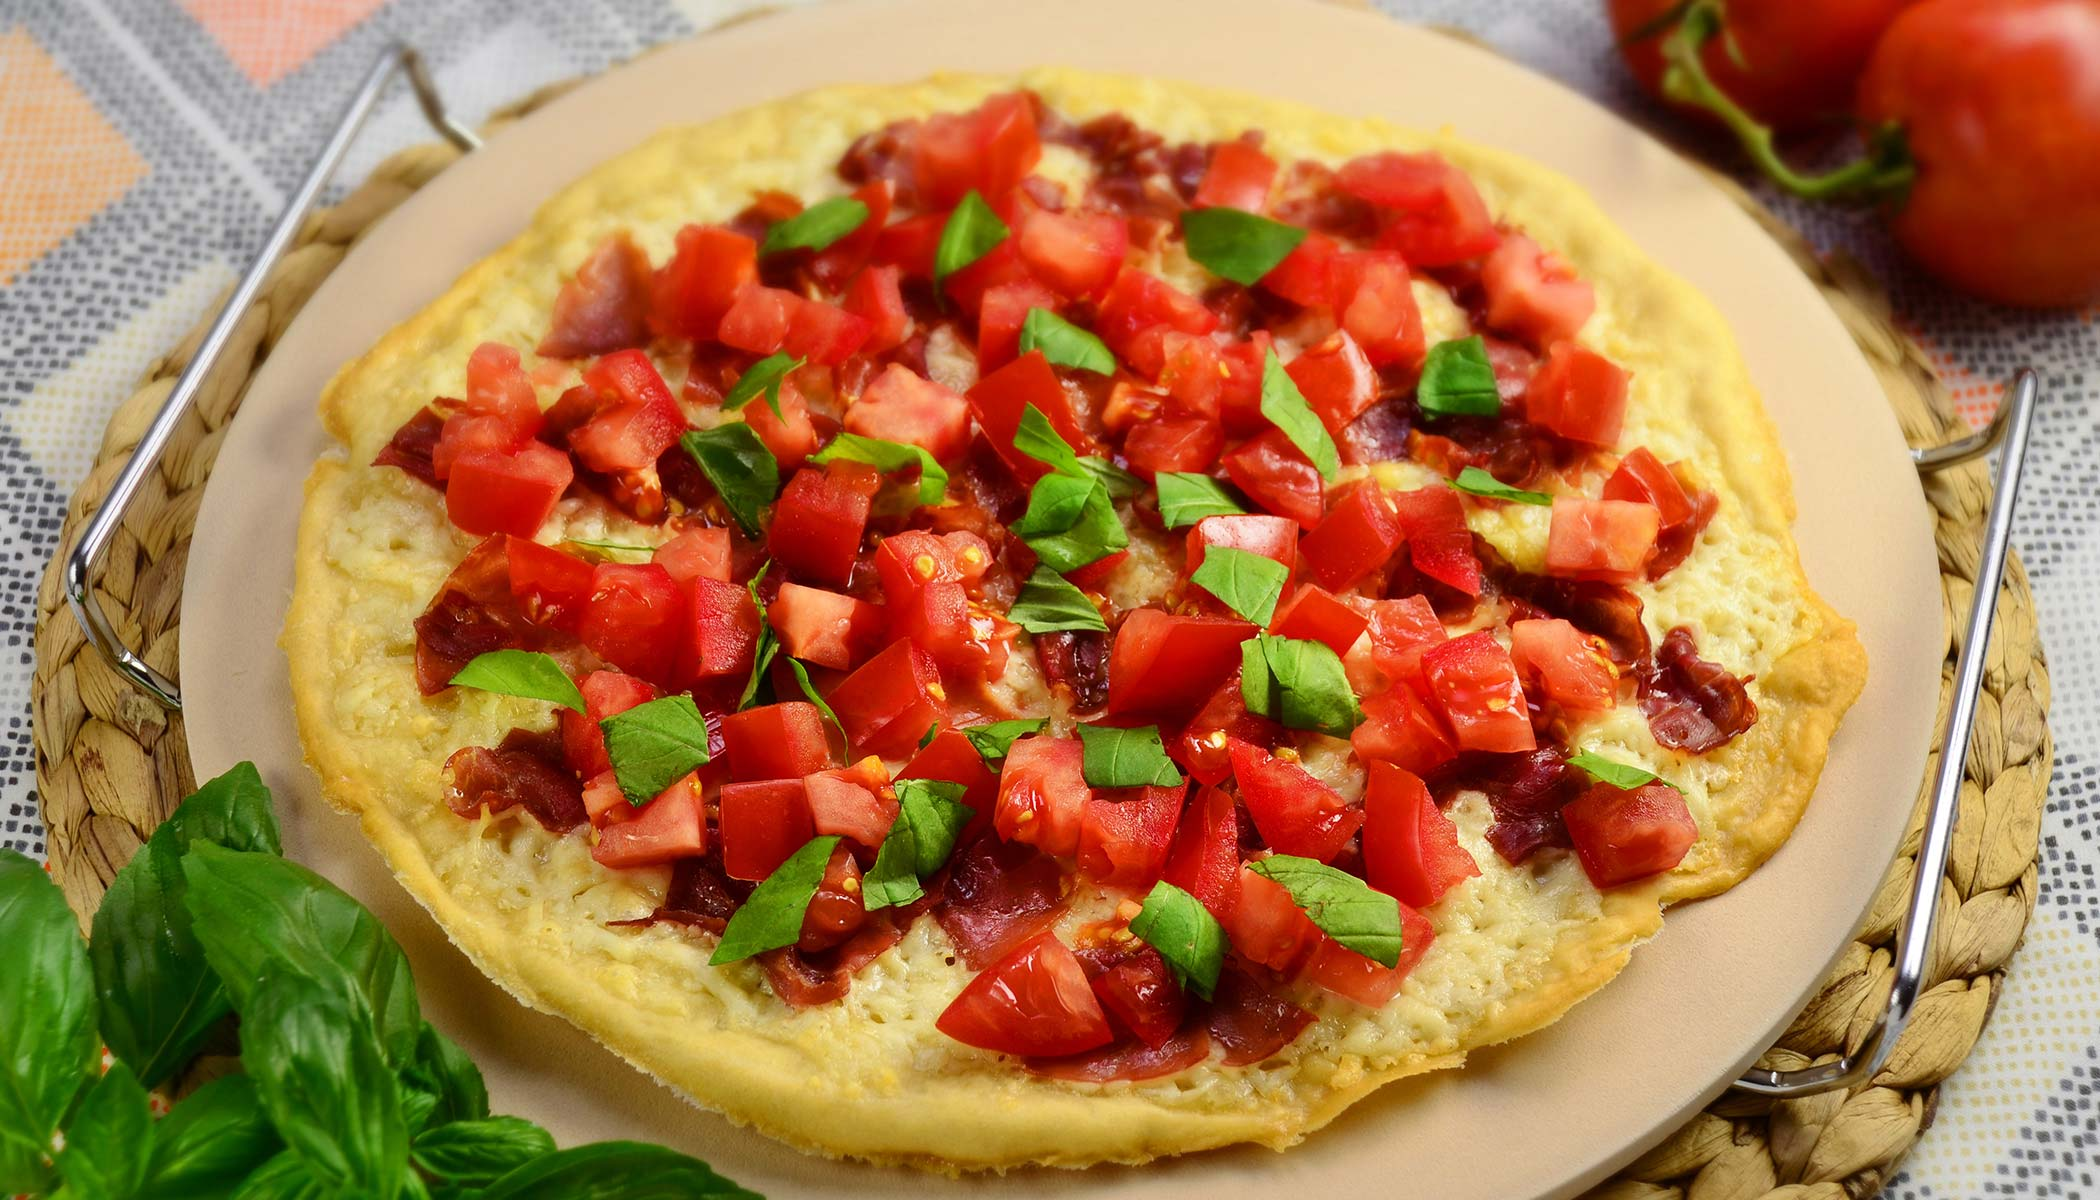 Pizza - Tomato & Basil Appetizer Style (Thin Crust)